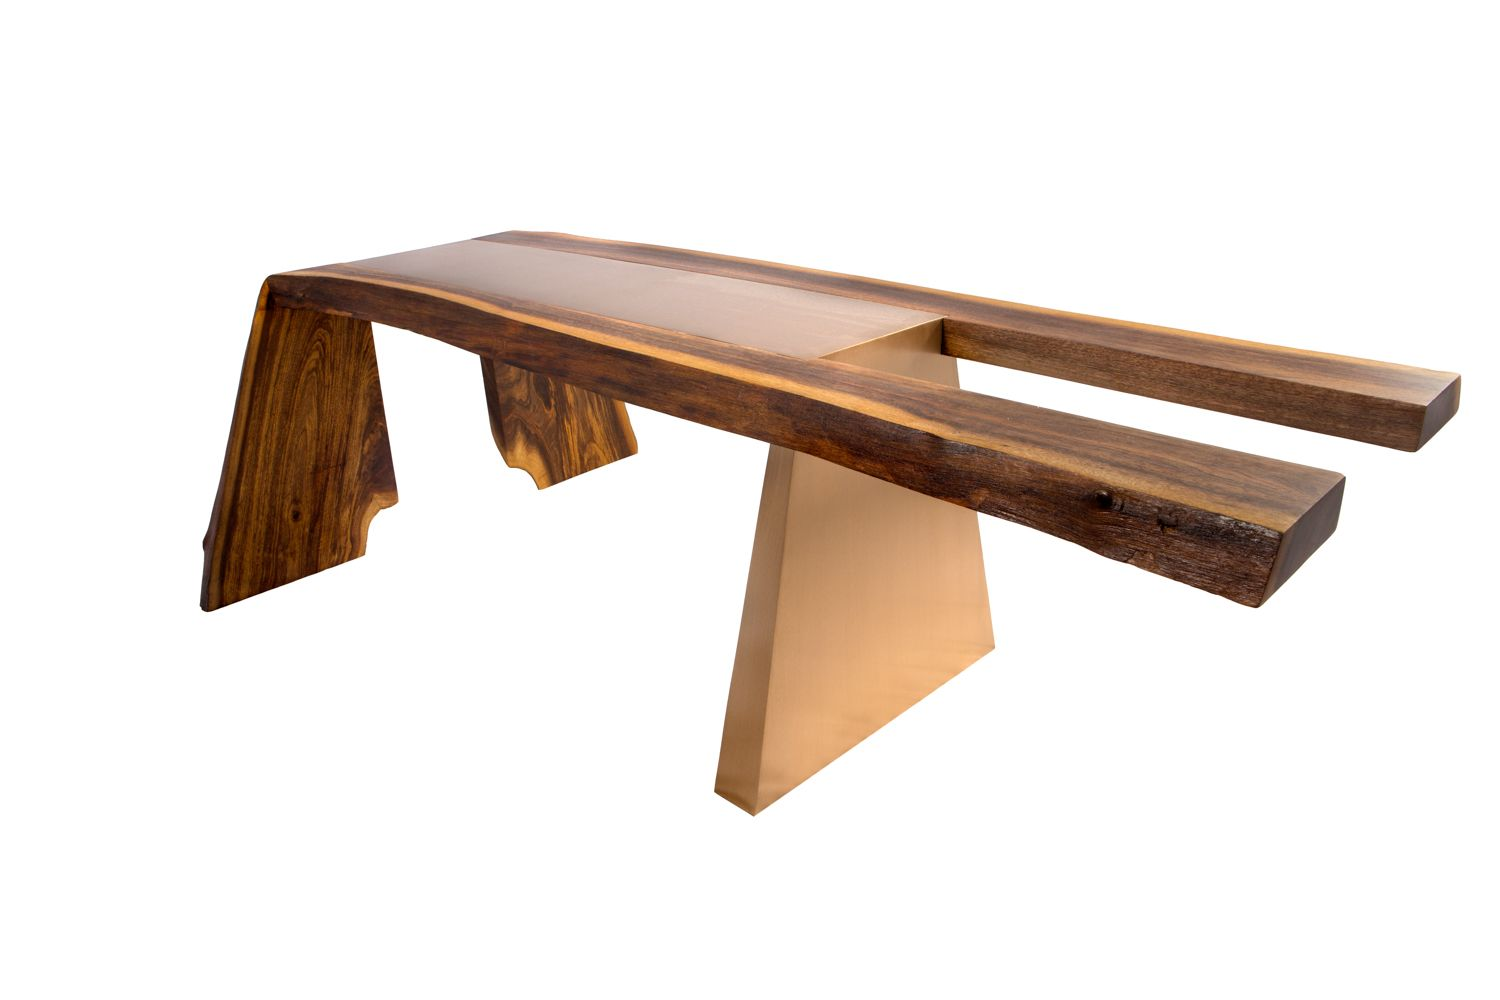 Matthew shively reveals newest furniture design matthew for Table design with div